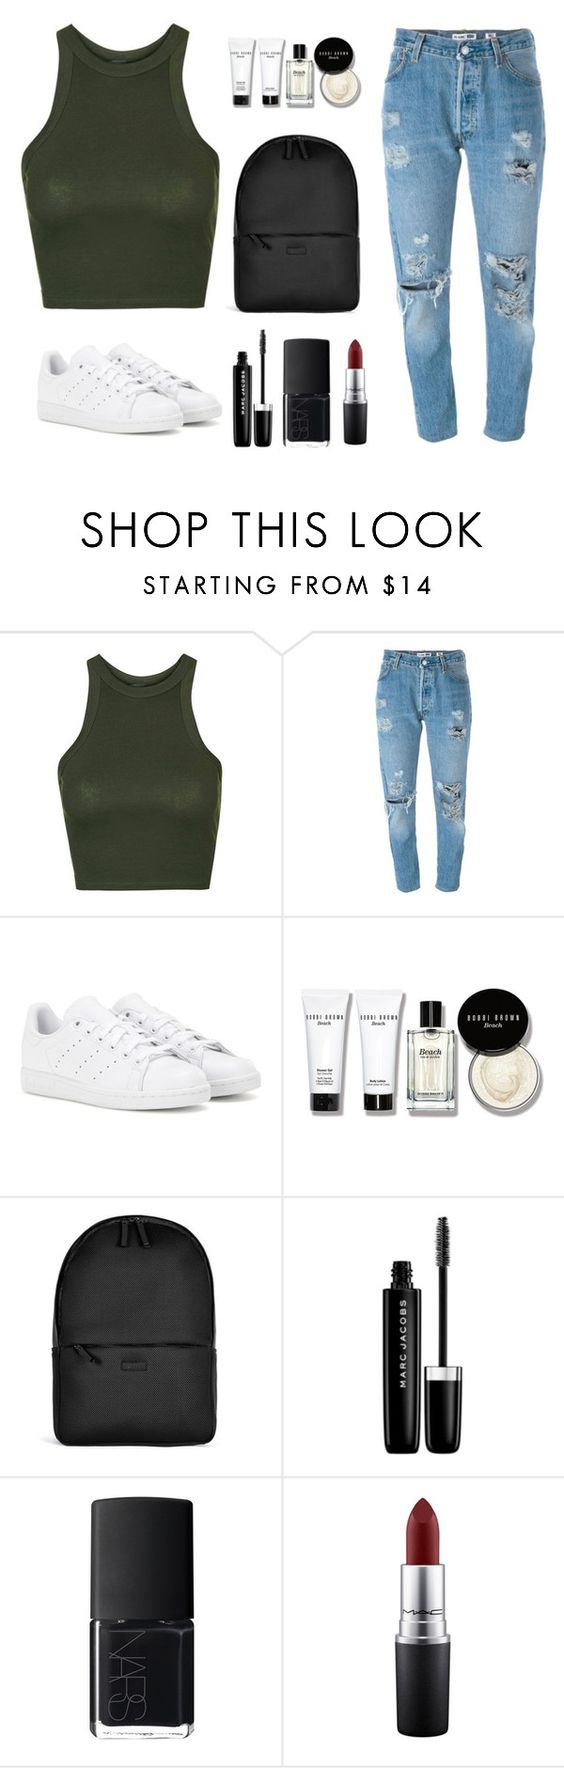 """""""x"""" by jdee10 ❤ liked on Polyvore featuring Topshop, Levi's, adidas, Bobbi Brown Cosmetics, Rains, Marc Jacobs, NARS Cosmetics and MAC Cosmetics"""